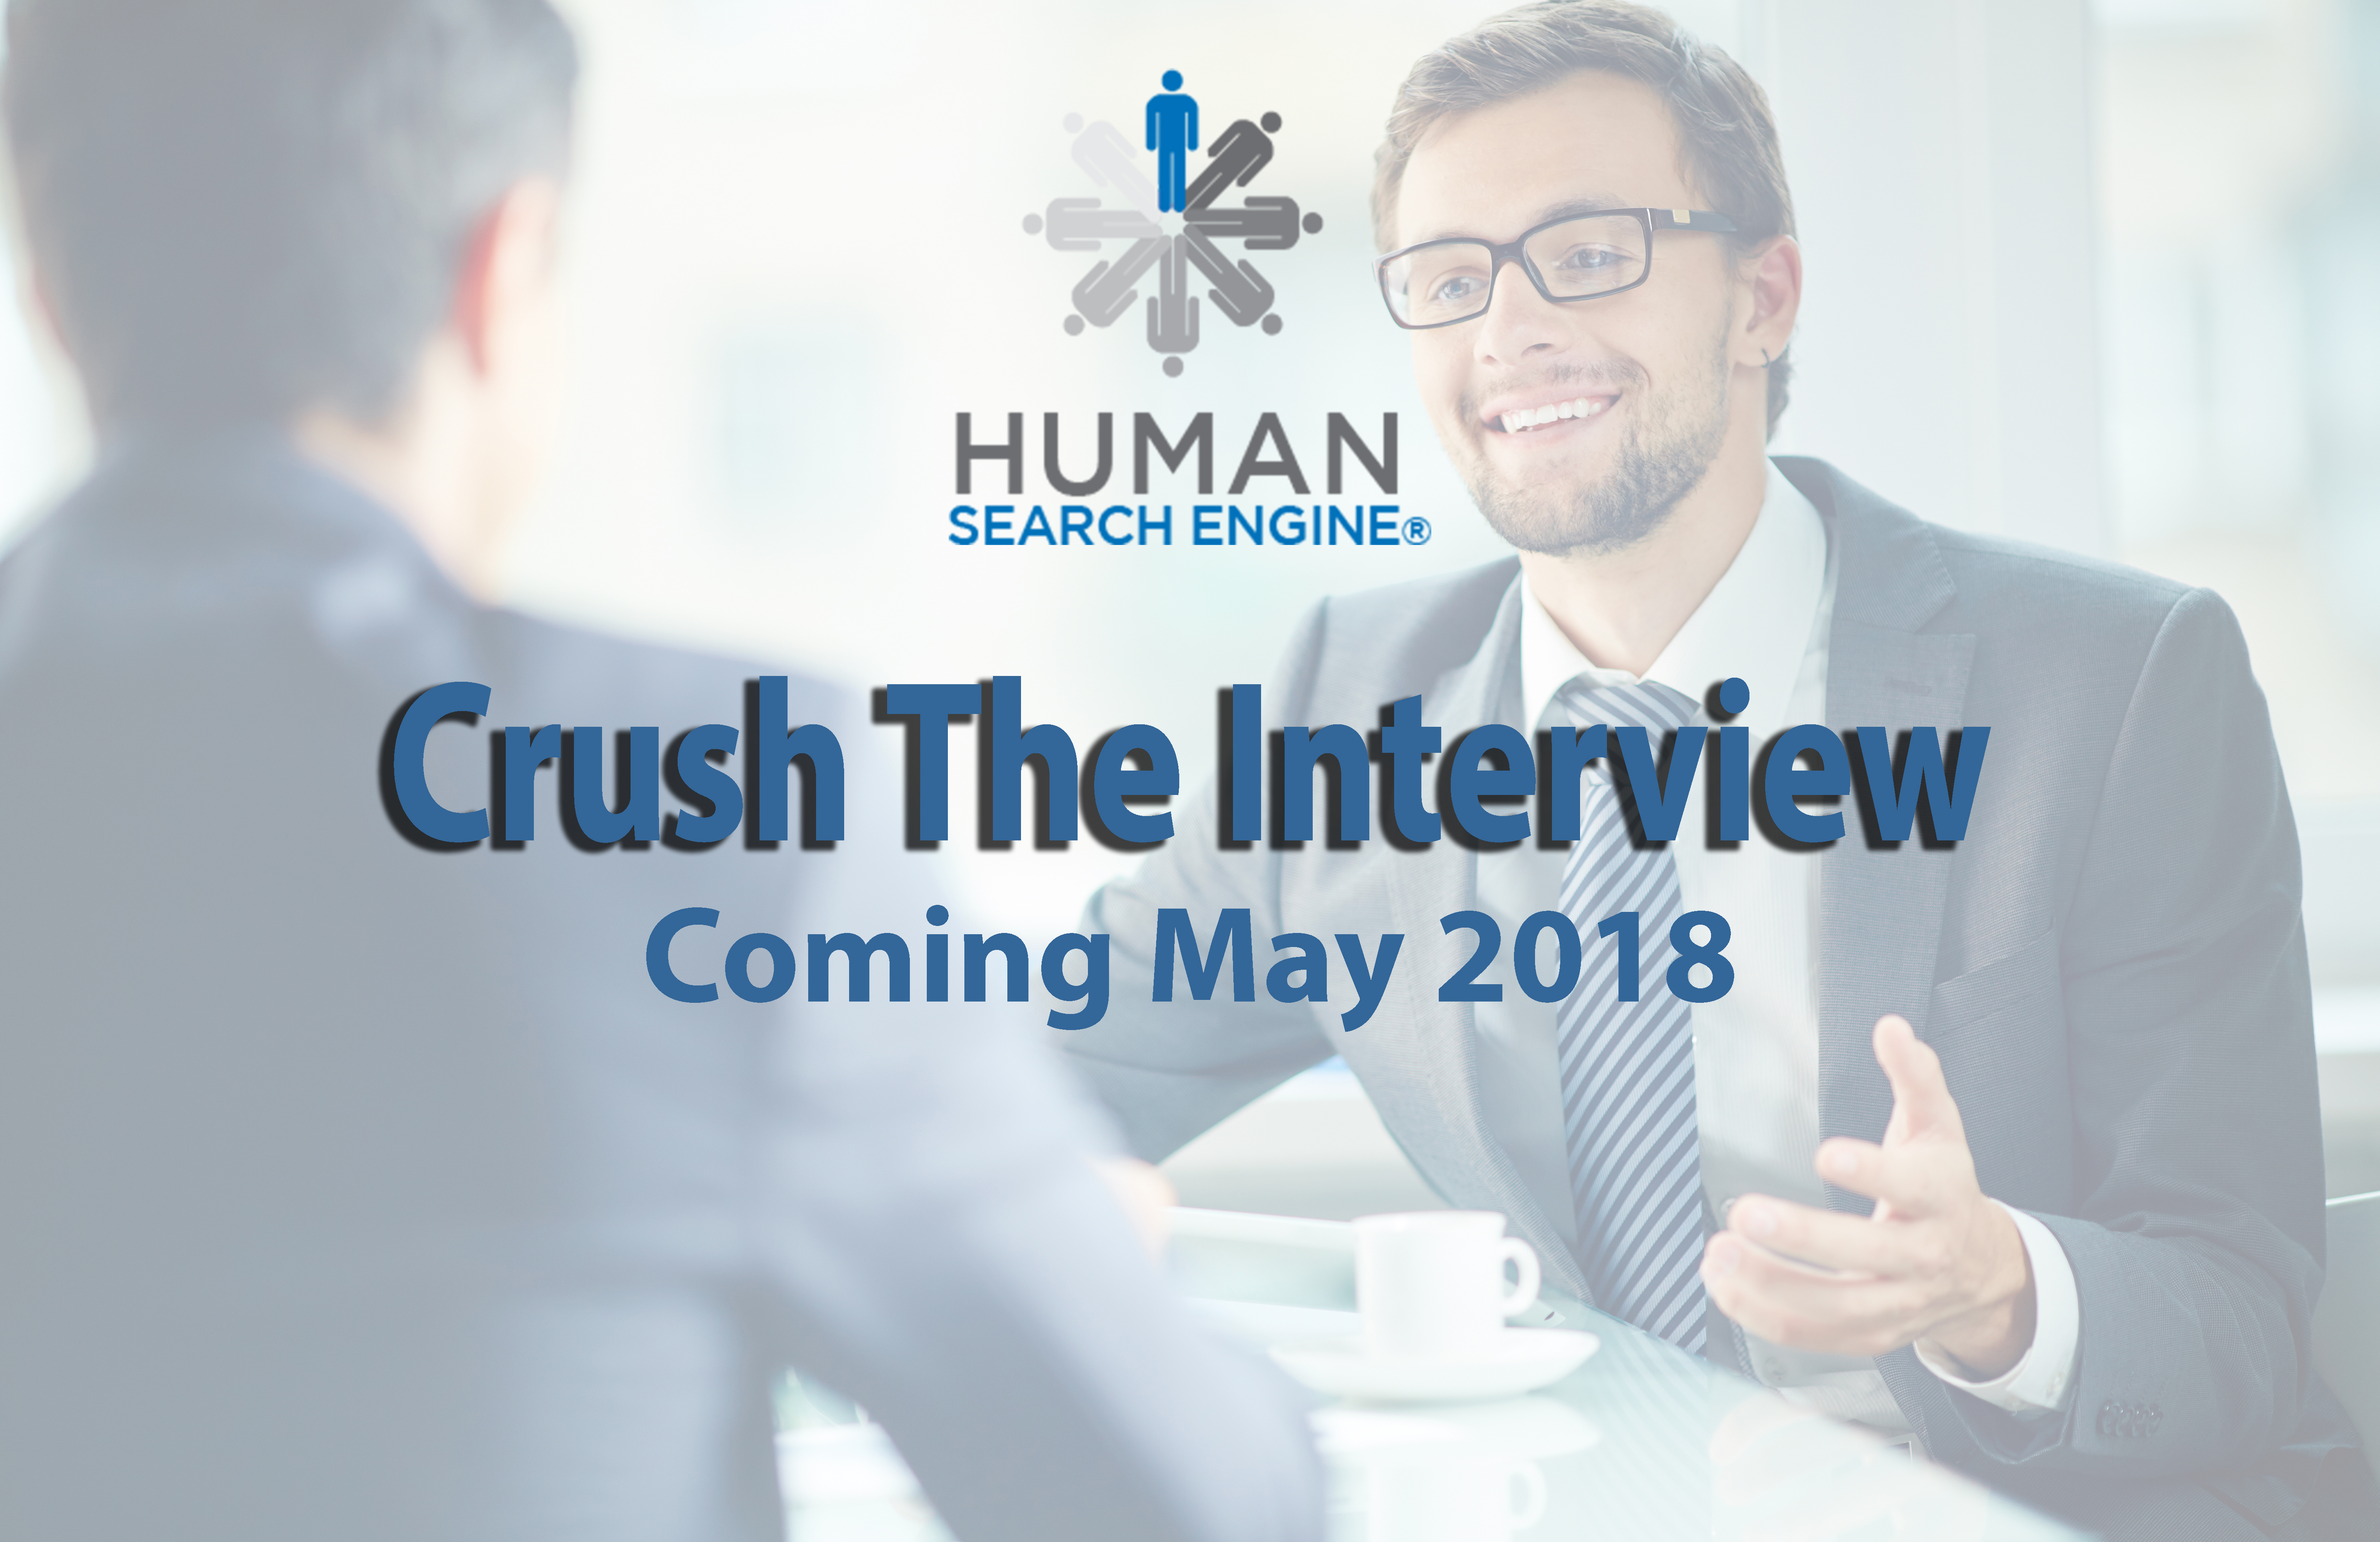 Crush The Interview - Available May 2018